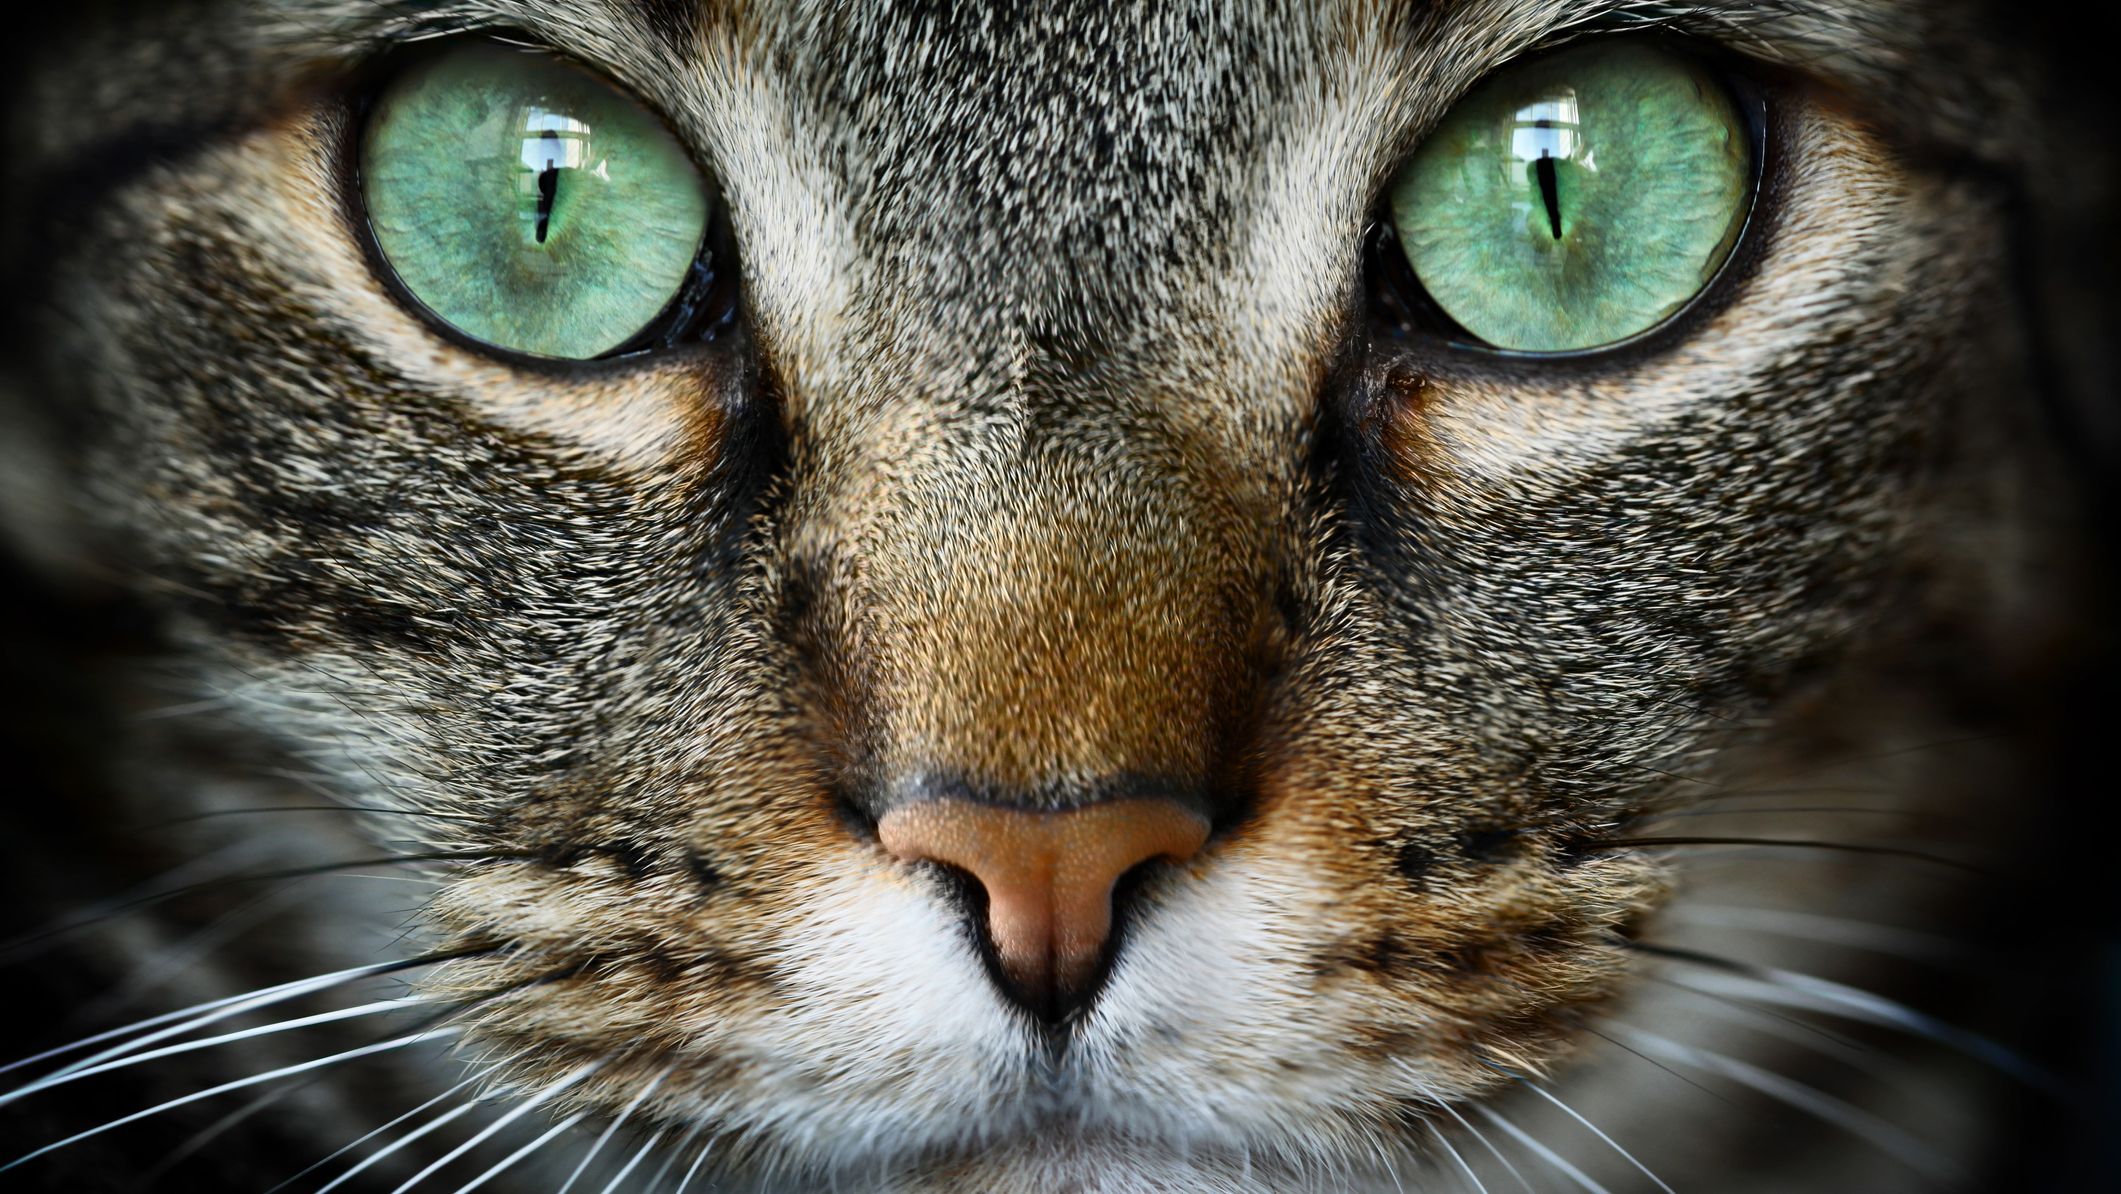 50 Fascinating Facts About Cats